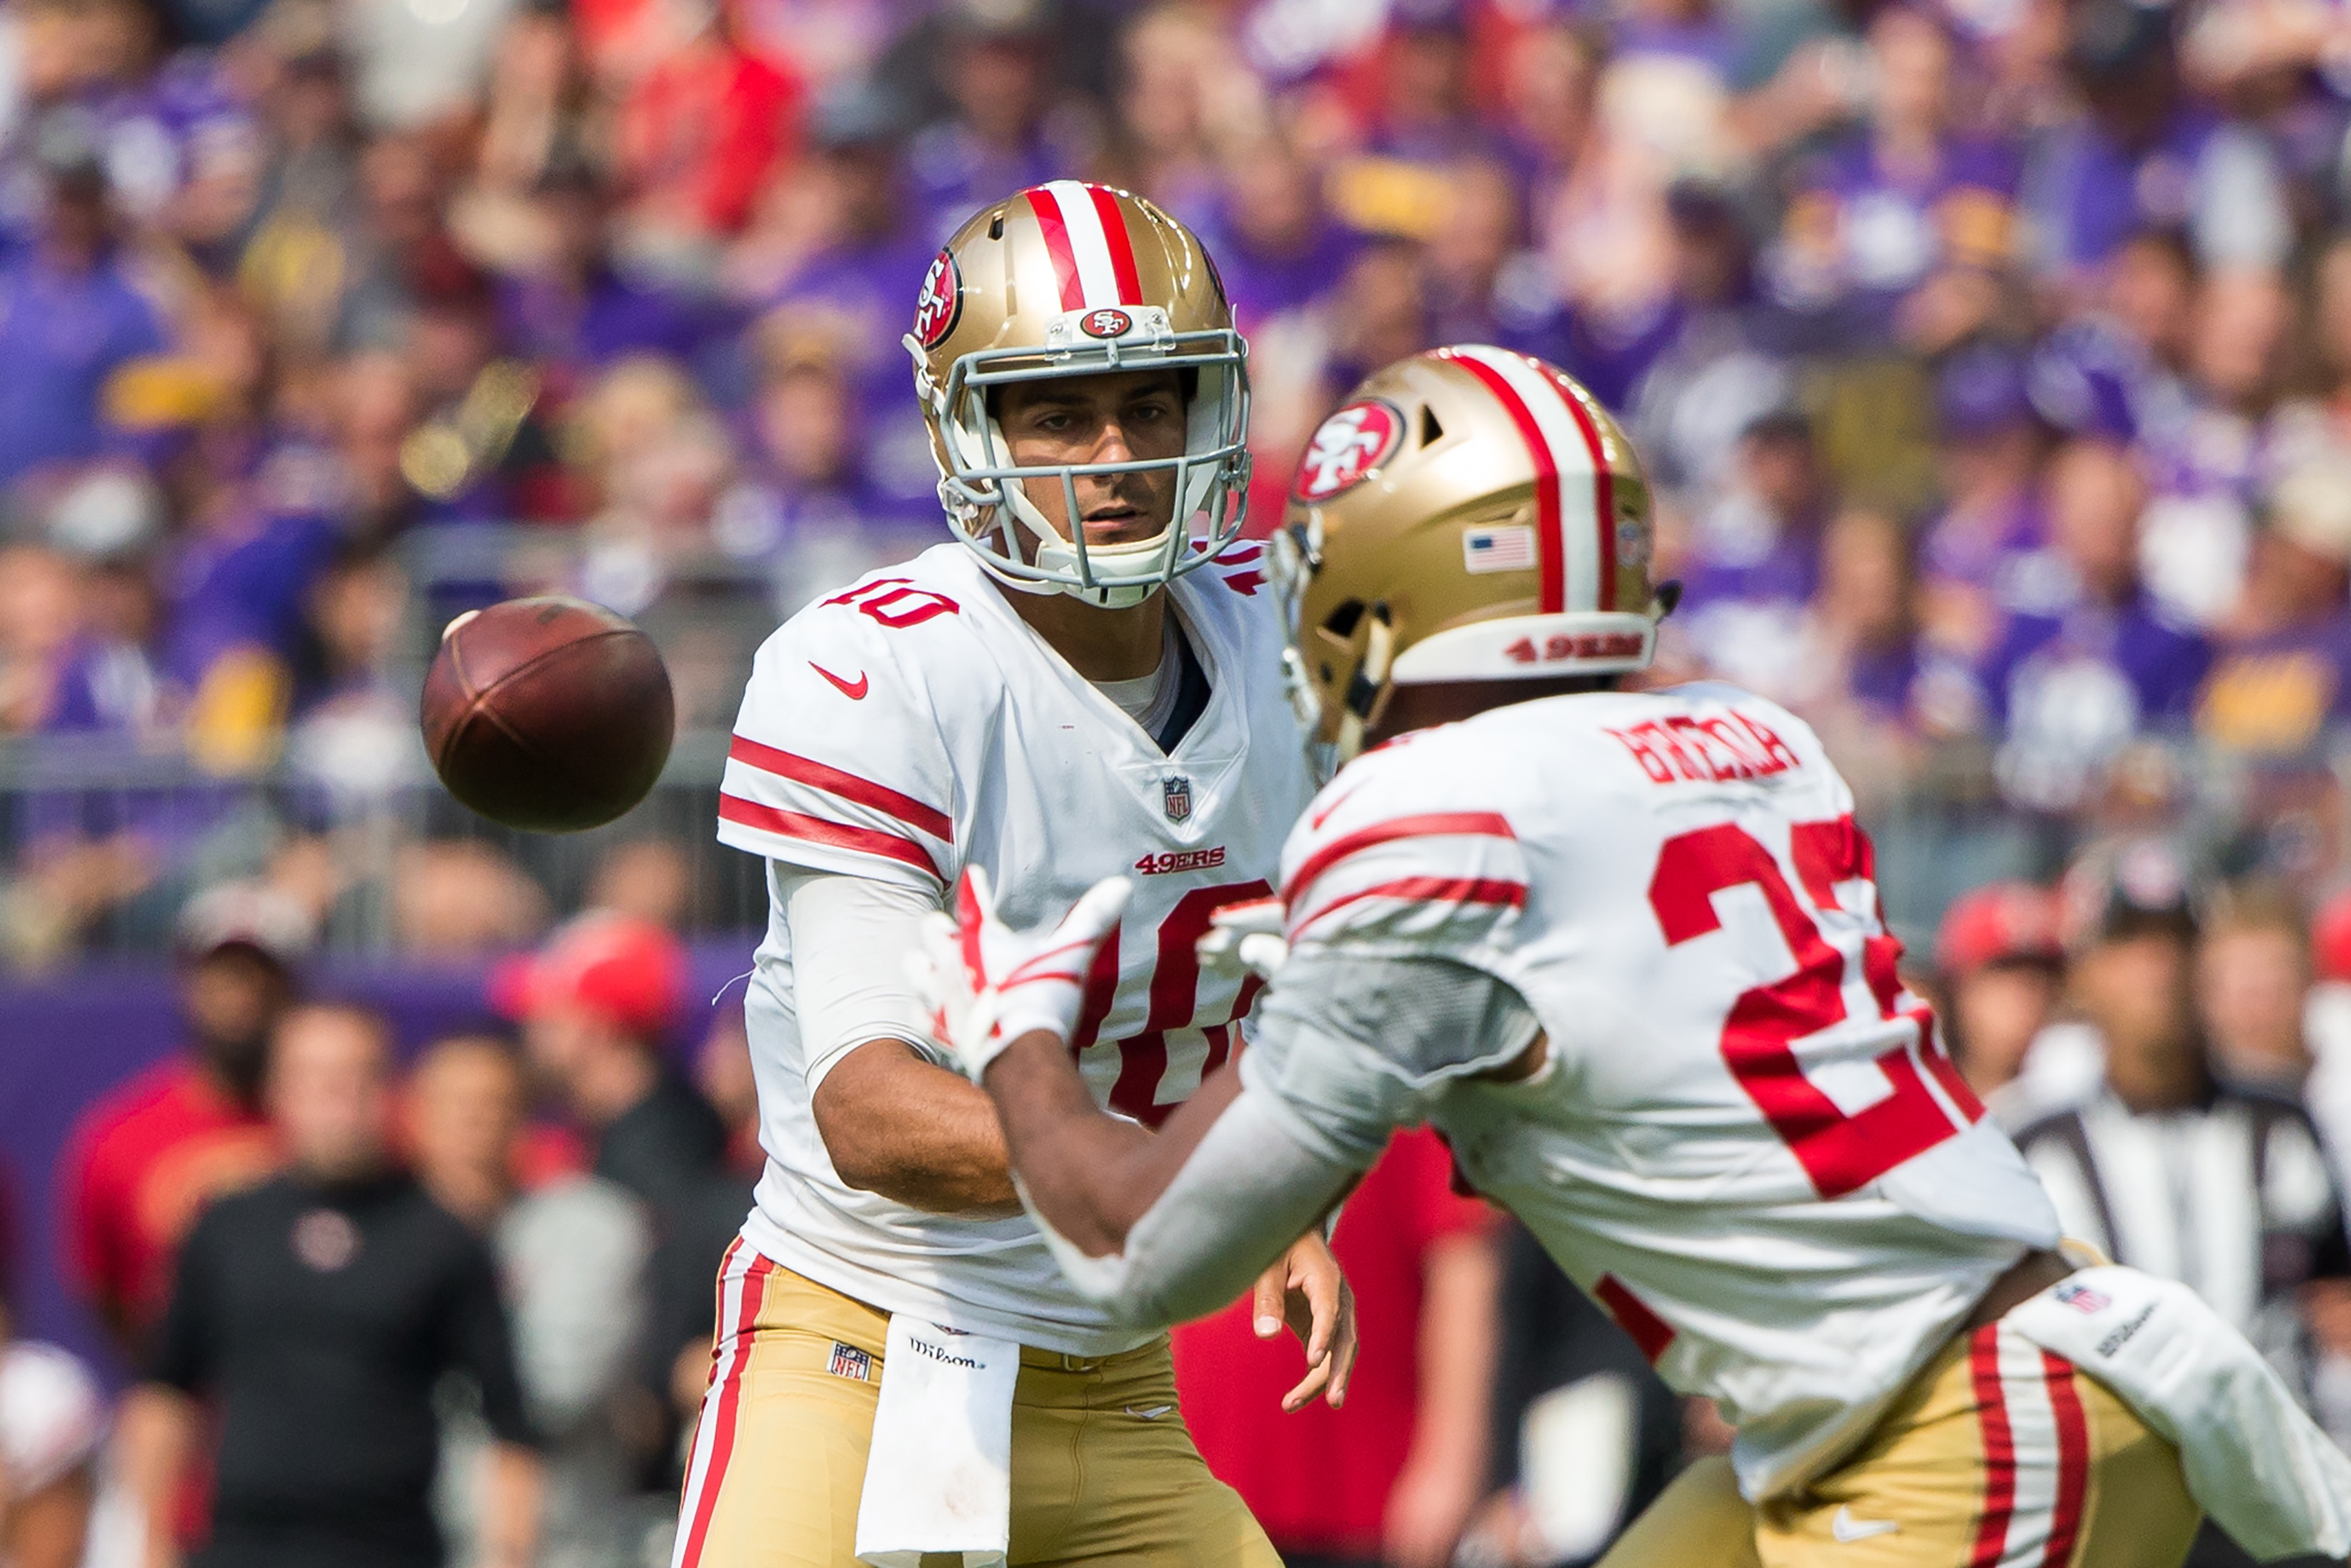 68cdde8d6 Breaking down the 49ers injured reserve players heading into 2019 - Niners  Nation